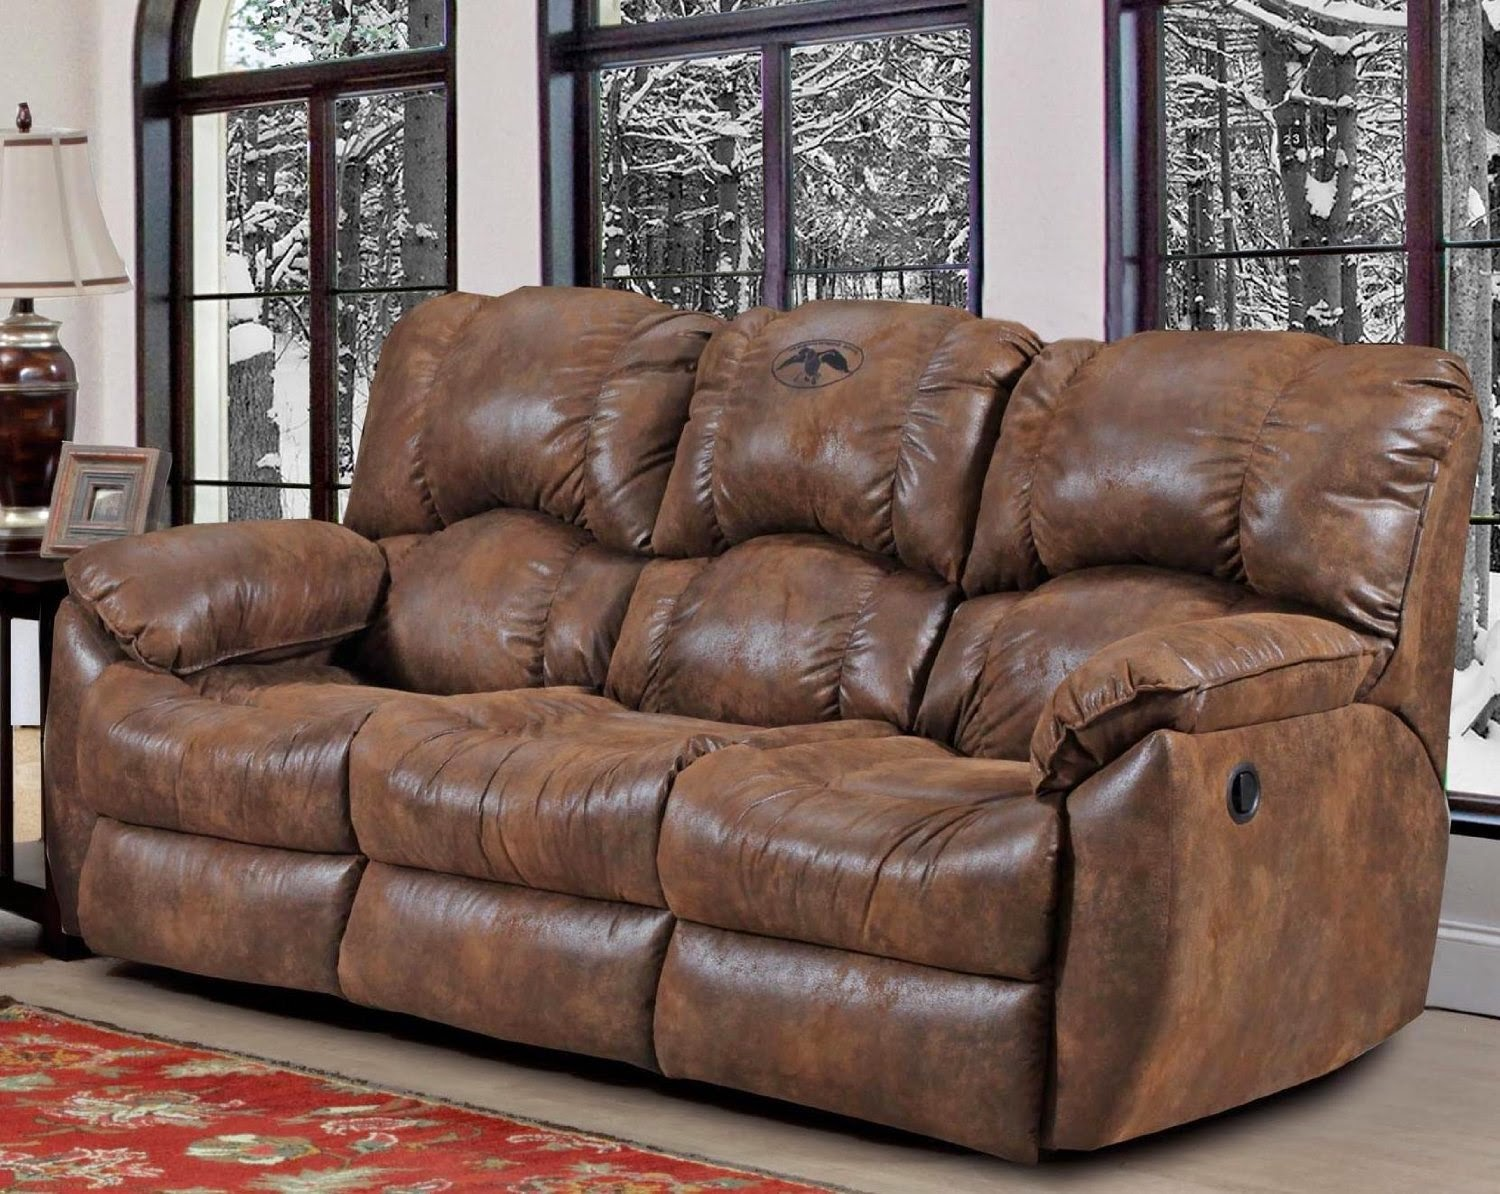 Double Reclining Leather Sofa Tan Cushion Ideas The Best Sofas Ratings Reviews Bernhardt Weston